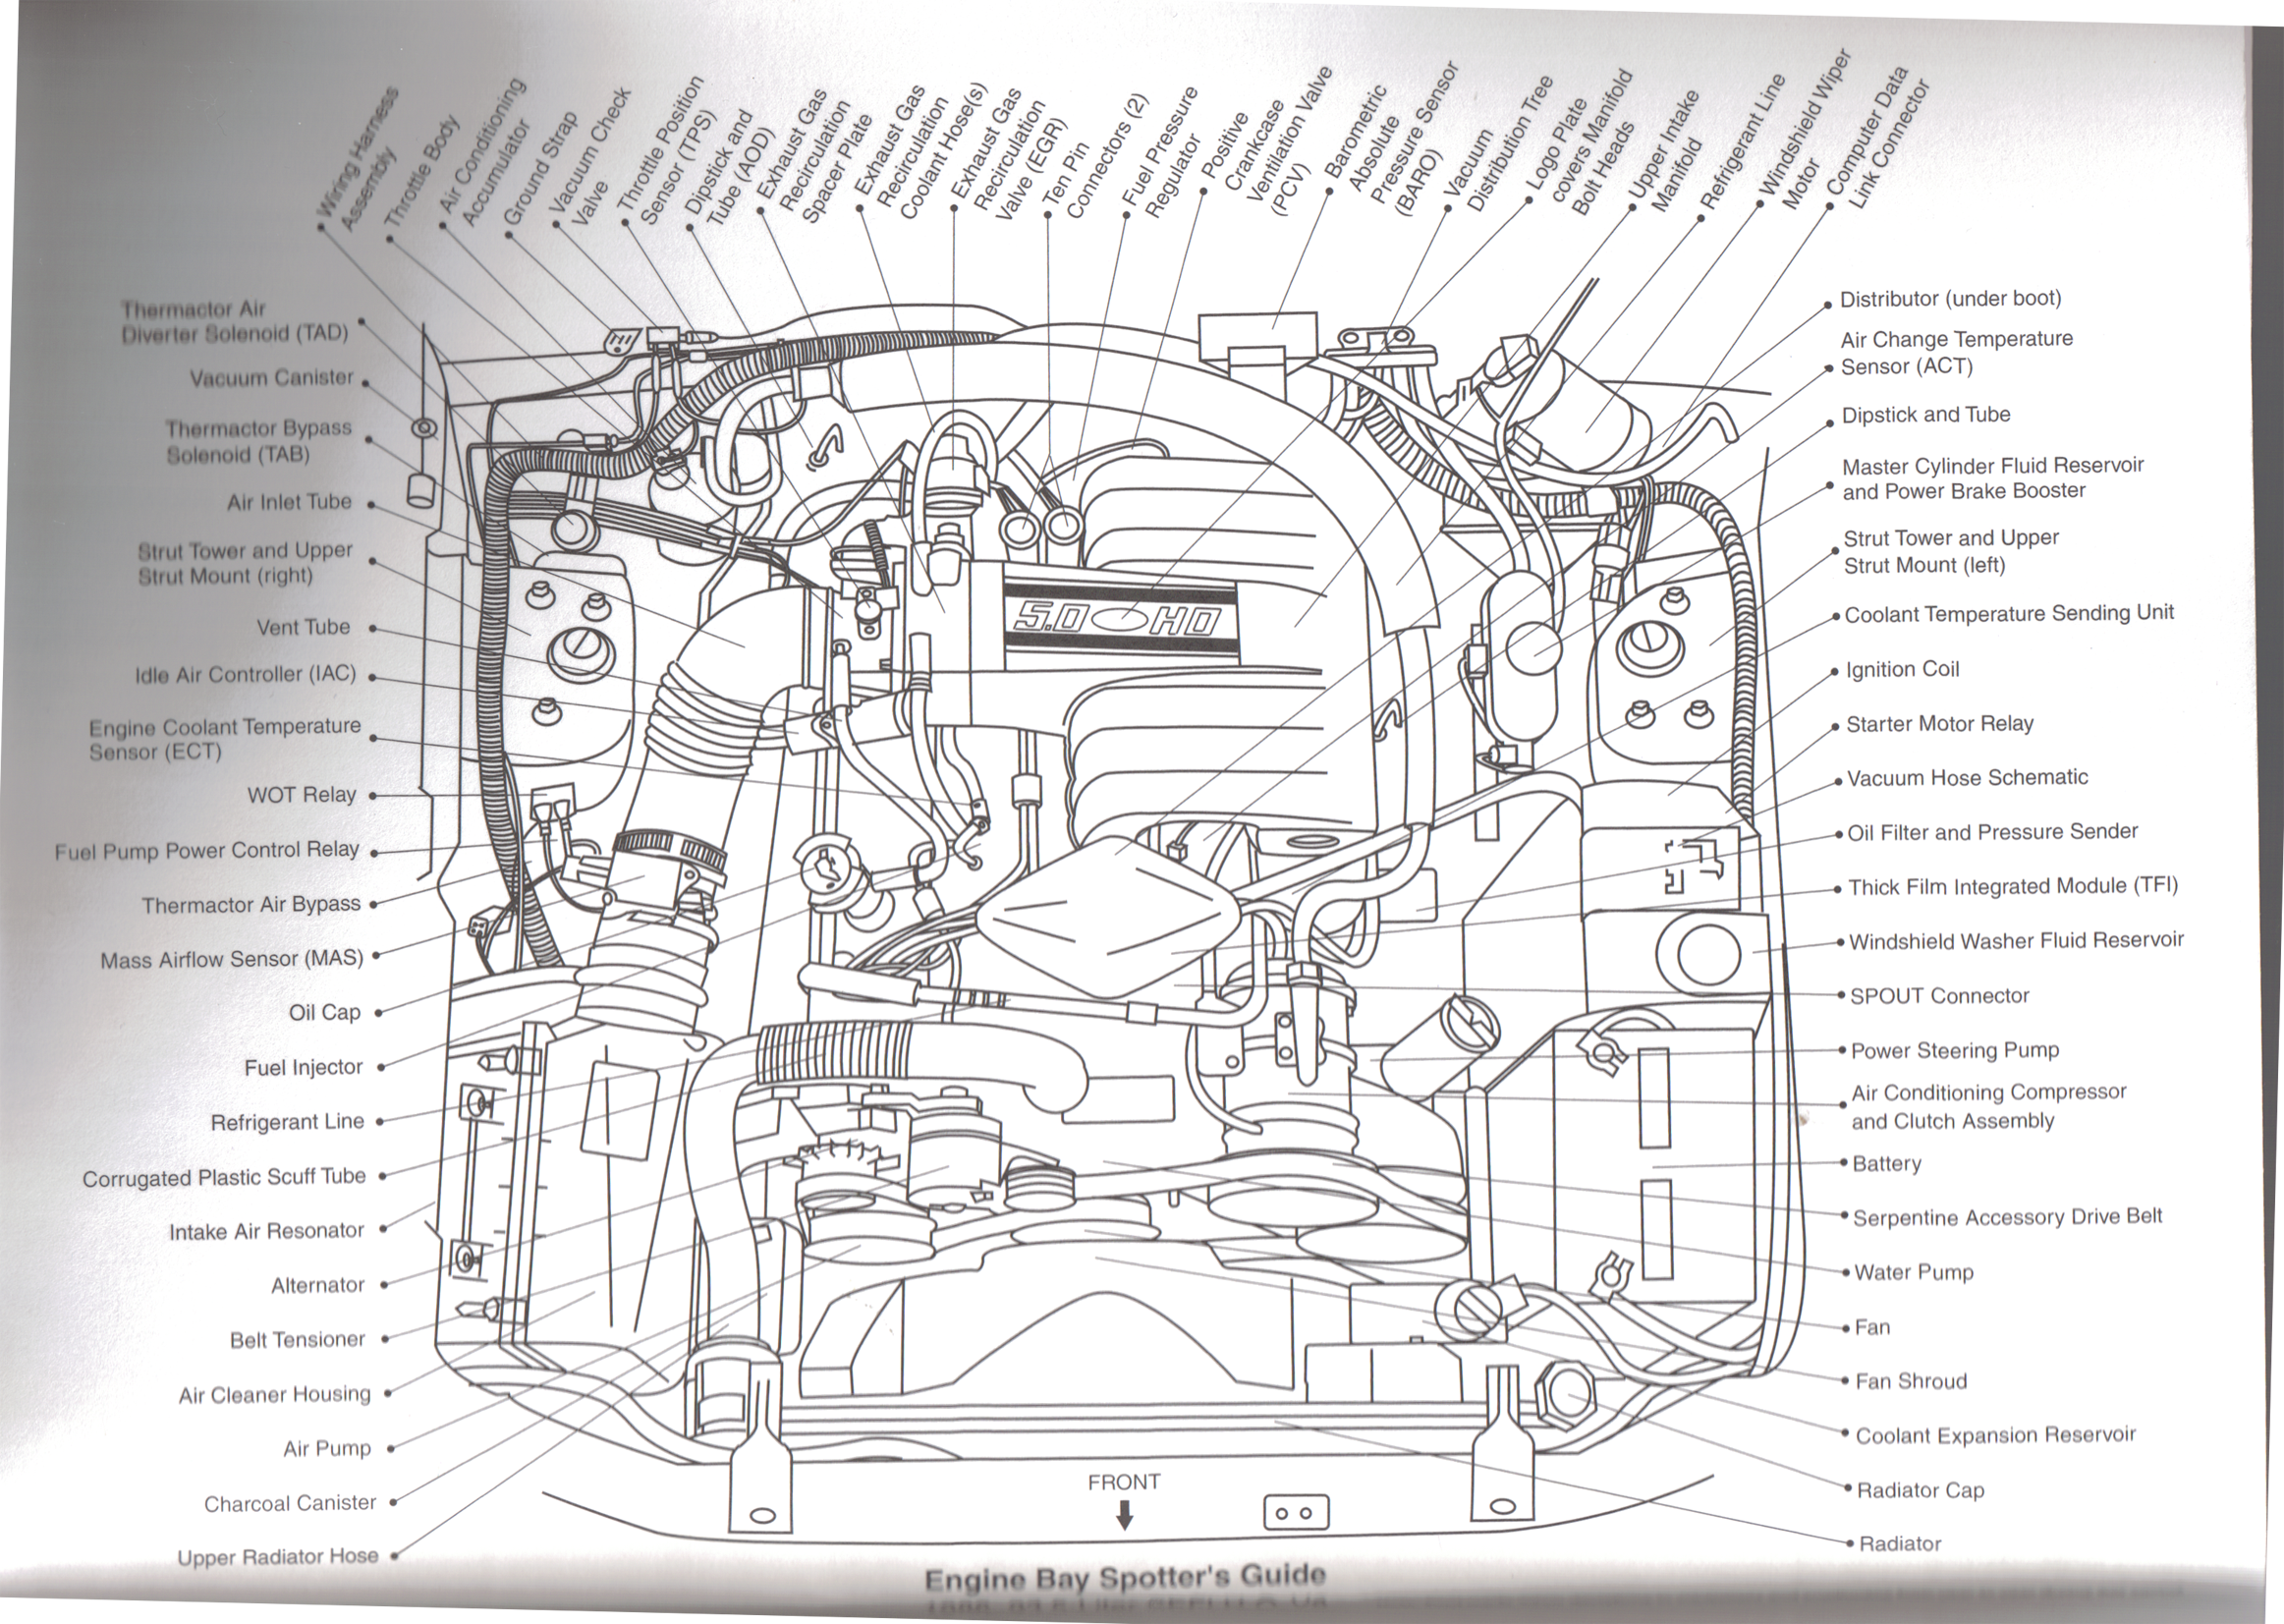 1987 1993 foxbody 5.0 sefi v8 engine part diagram everything you need to know about 1979 1993 foxbody mustangs 1991 ford mustang wiring diagram at edmiracle.co